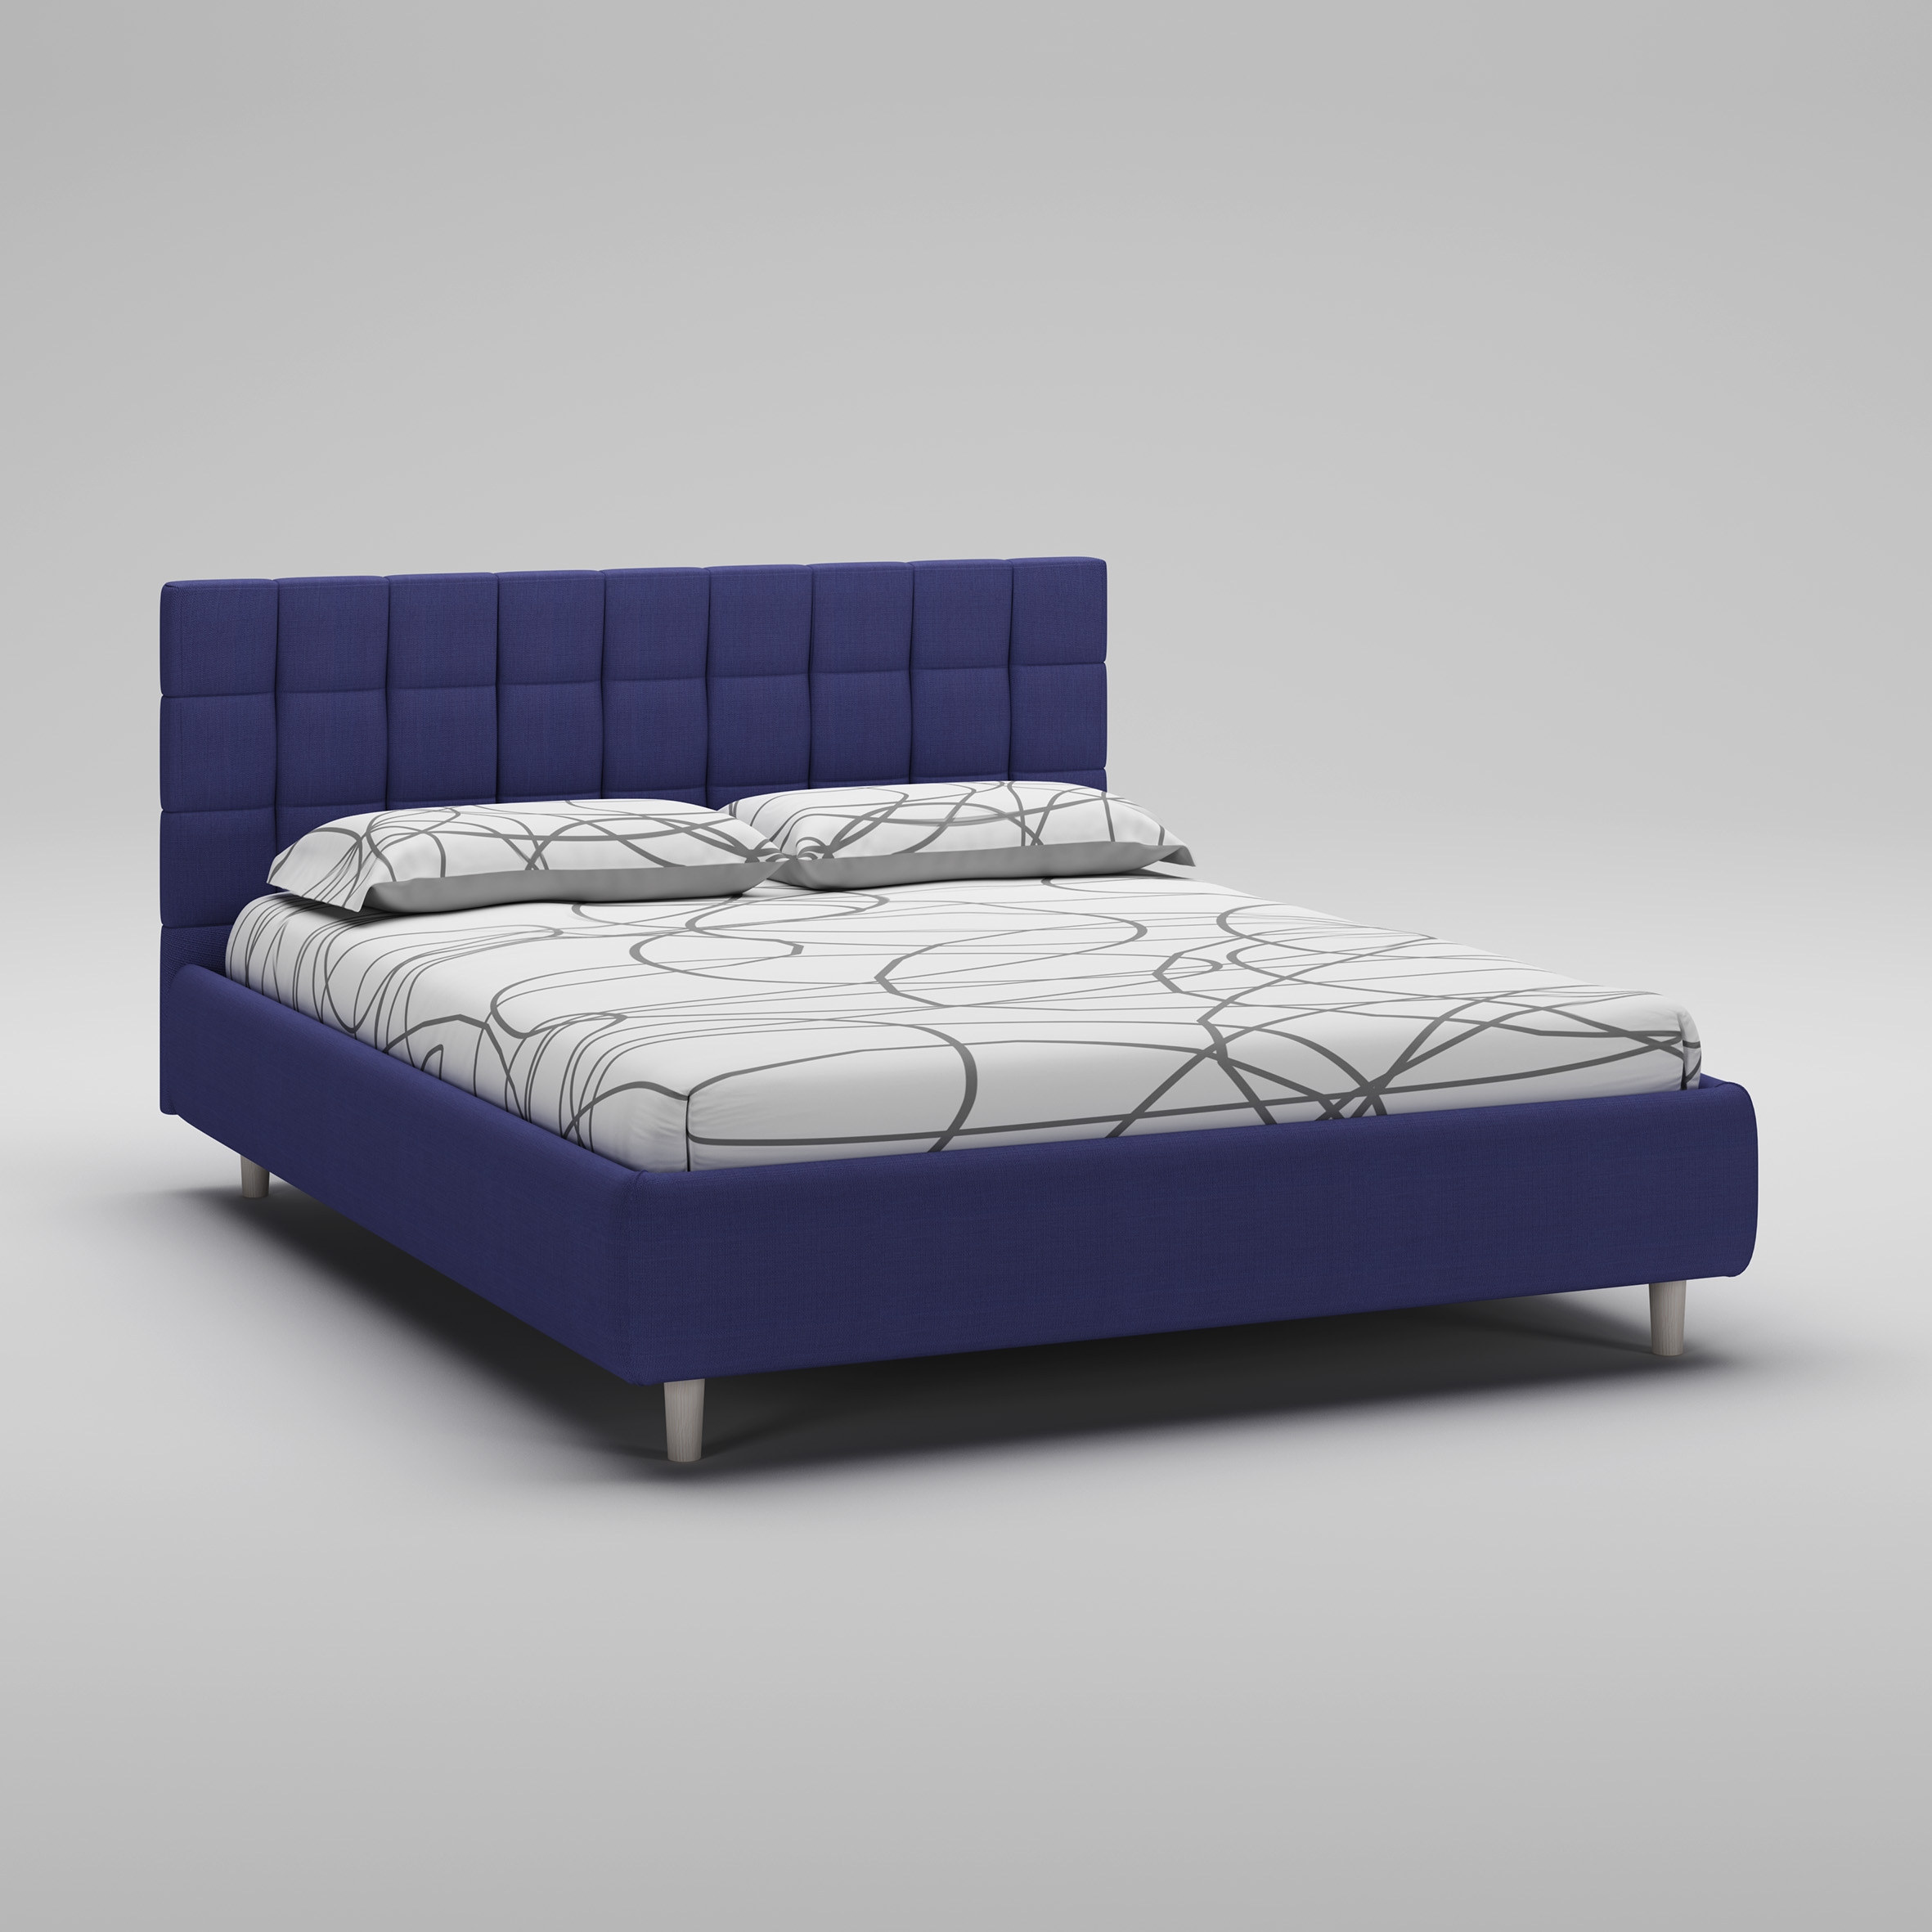 lit 160x200 avec cadre t te de lit bleu moretti compact so nuit. Black Bedroom Furniture Sets. Home Design Ideas